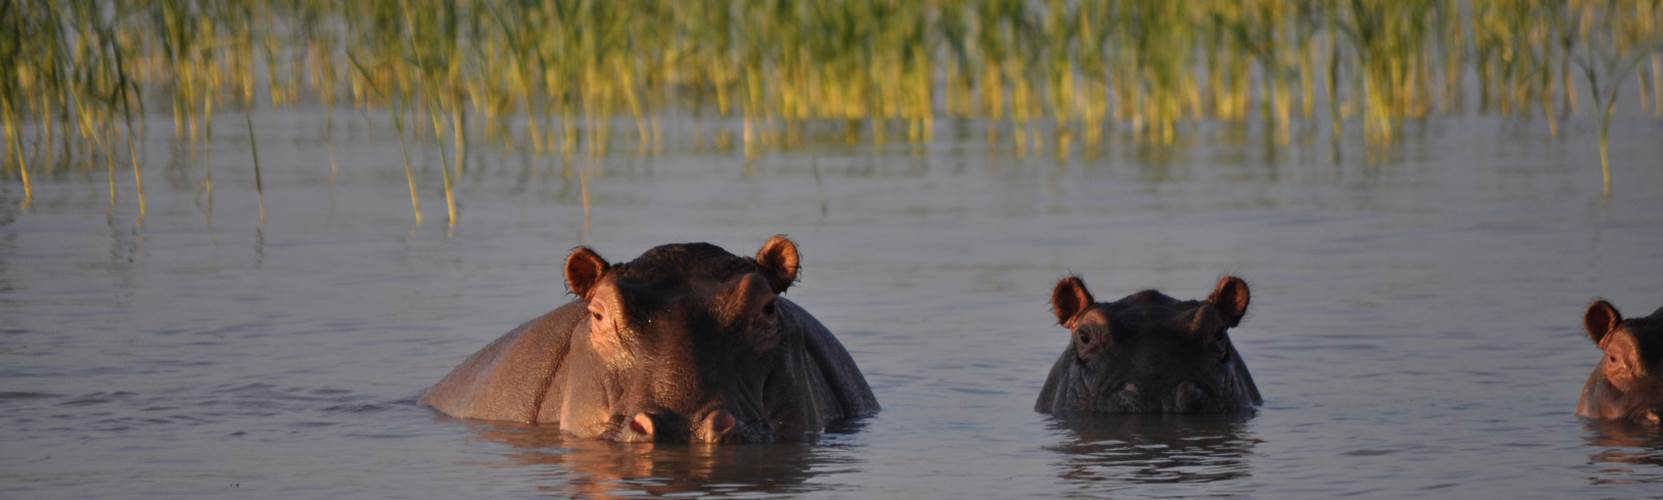 Kenya - Wallowing Hippo